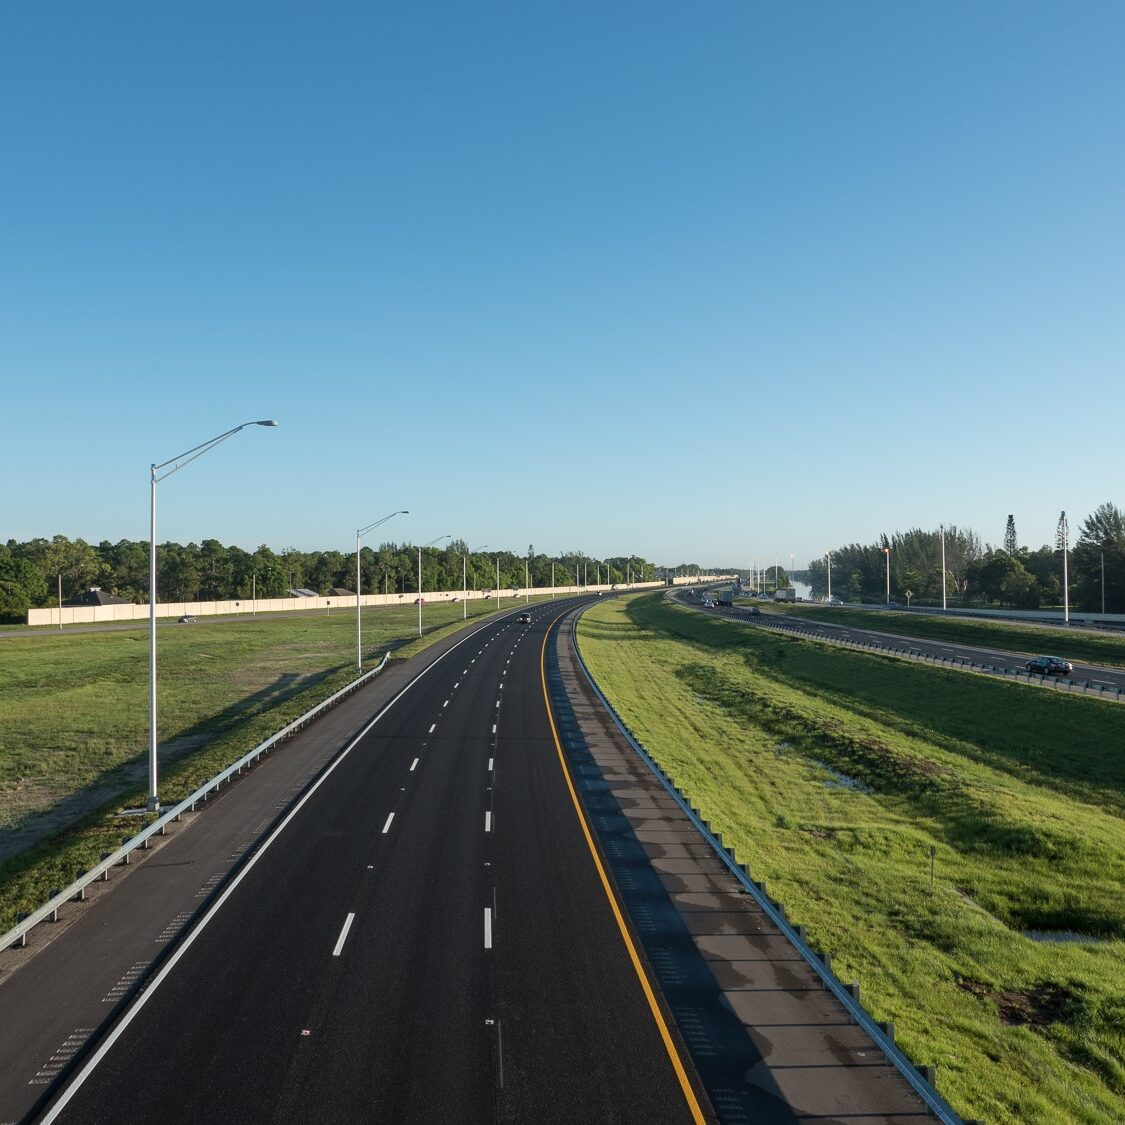 Florida I-75 Southbound from Golden Gate Bridg